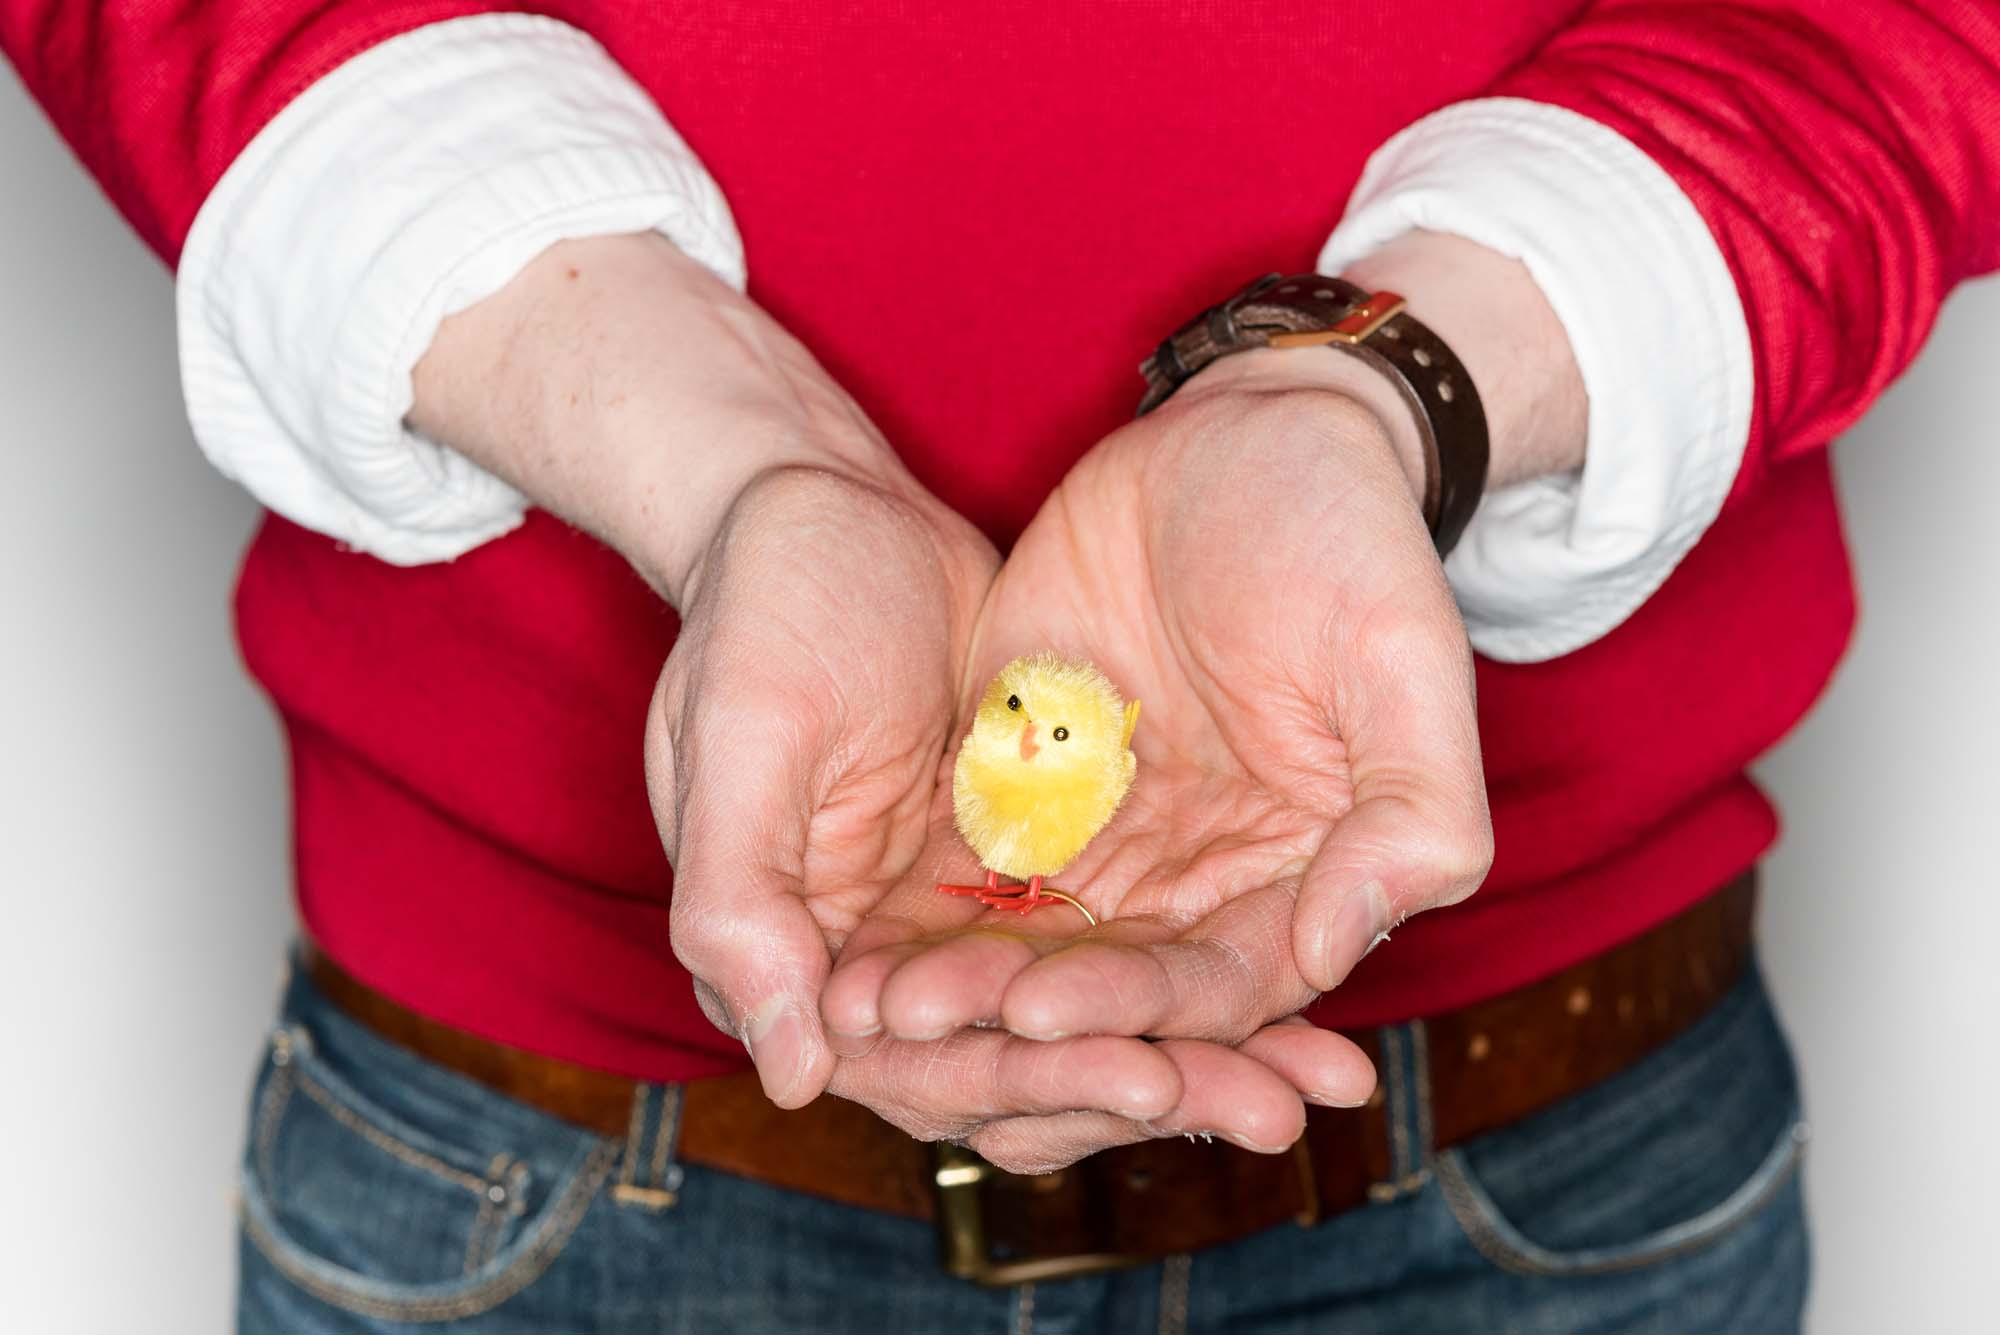 a croped picture of two hands holding a toy yellow chick